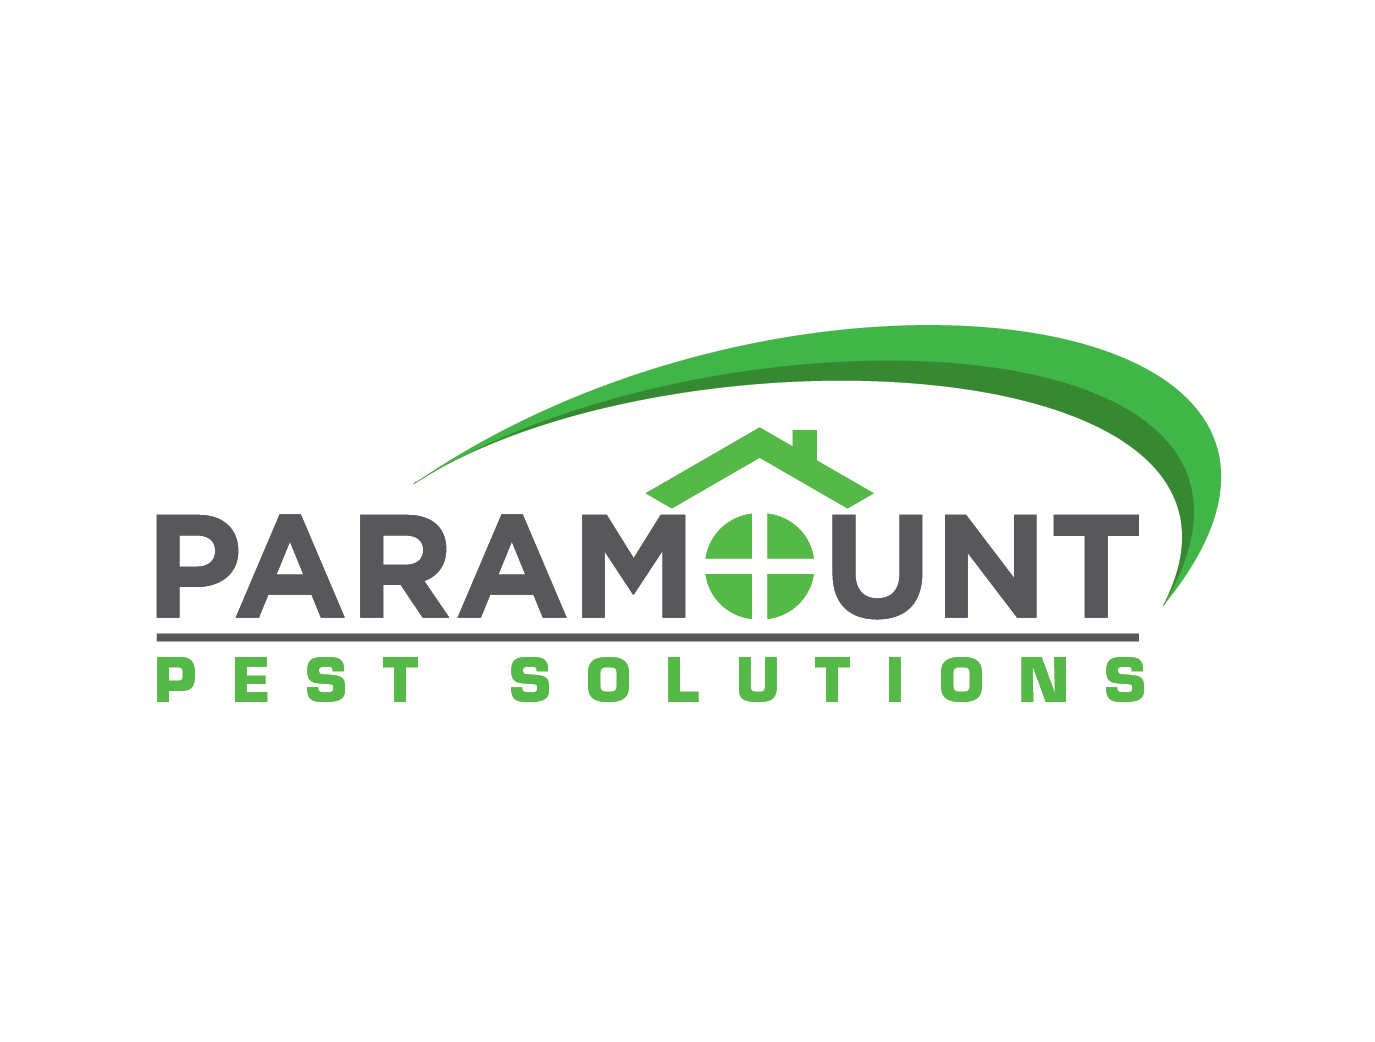 Mississippi's Top Rated Local® Pest Control Companies Award Winner: Paramount Pest Solutions